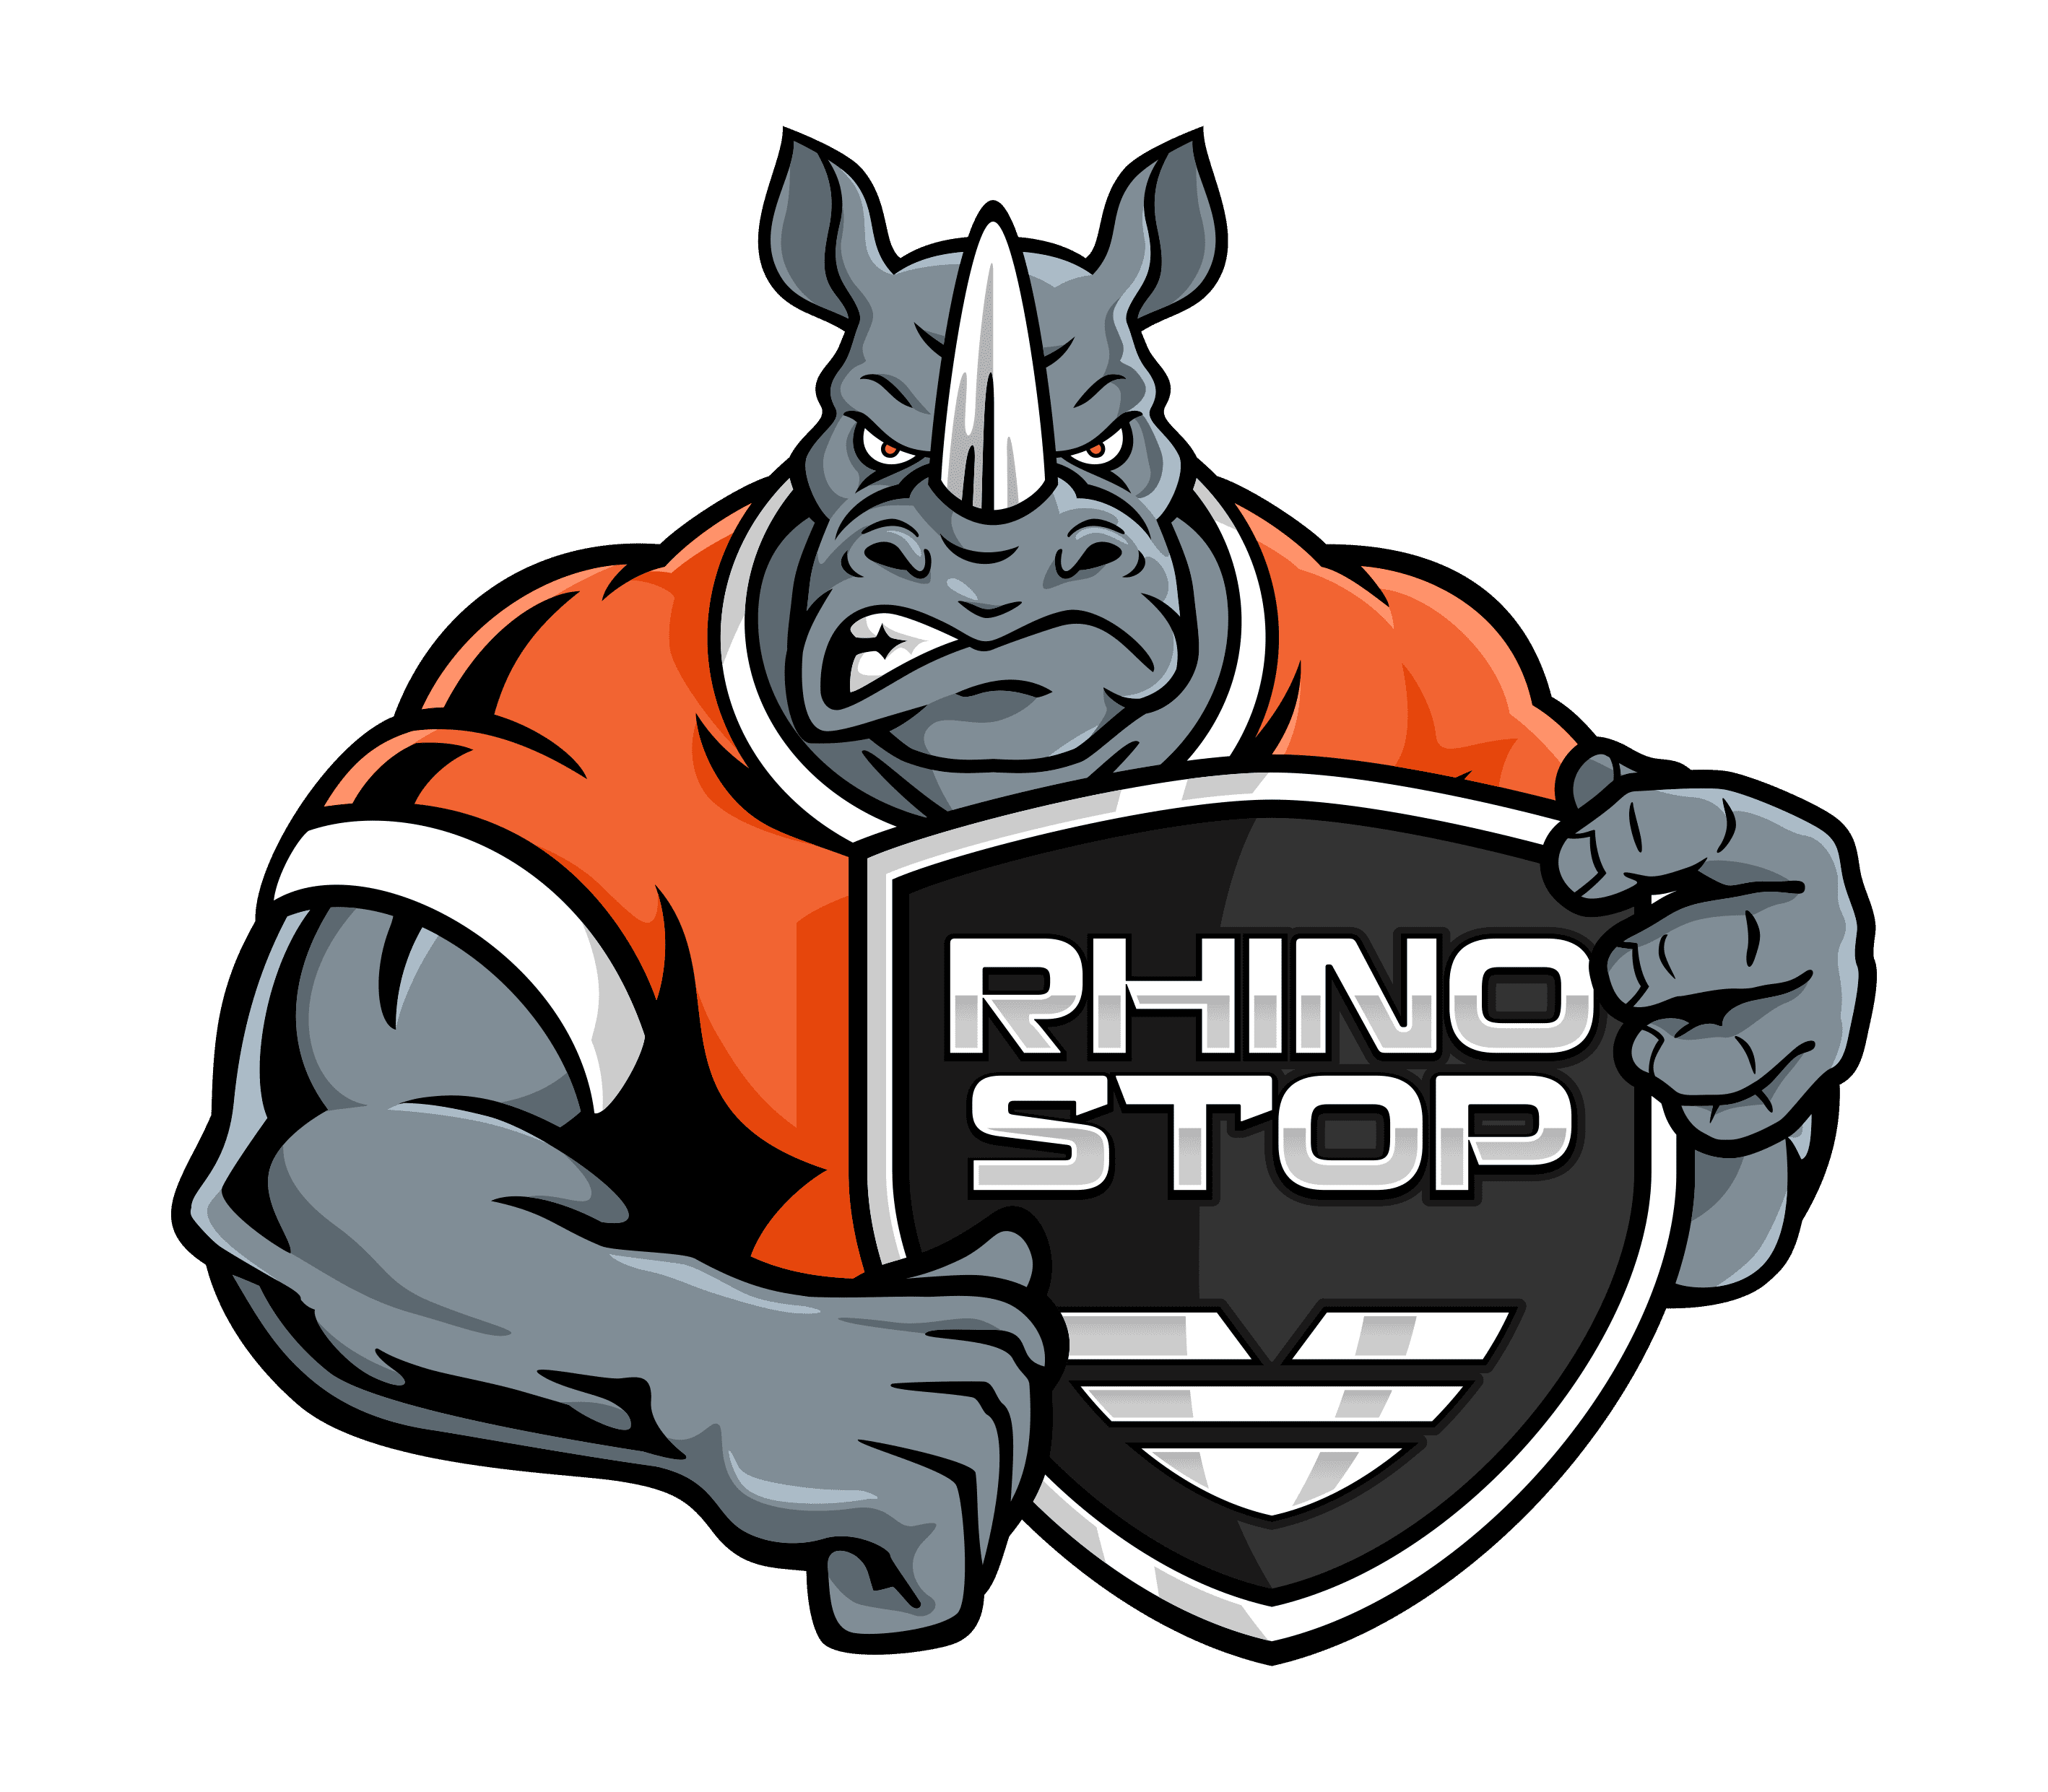 rhino stop safety barriers